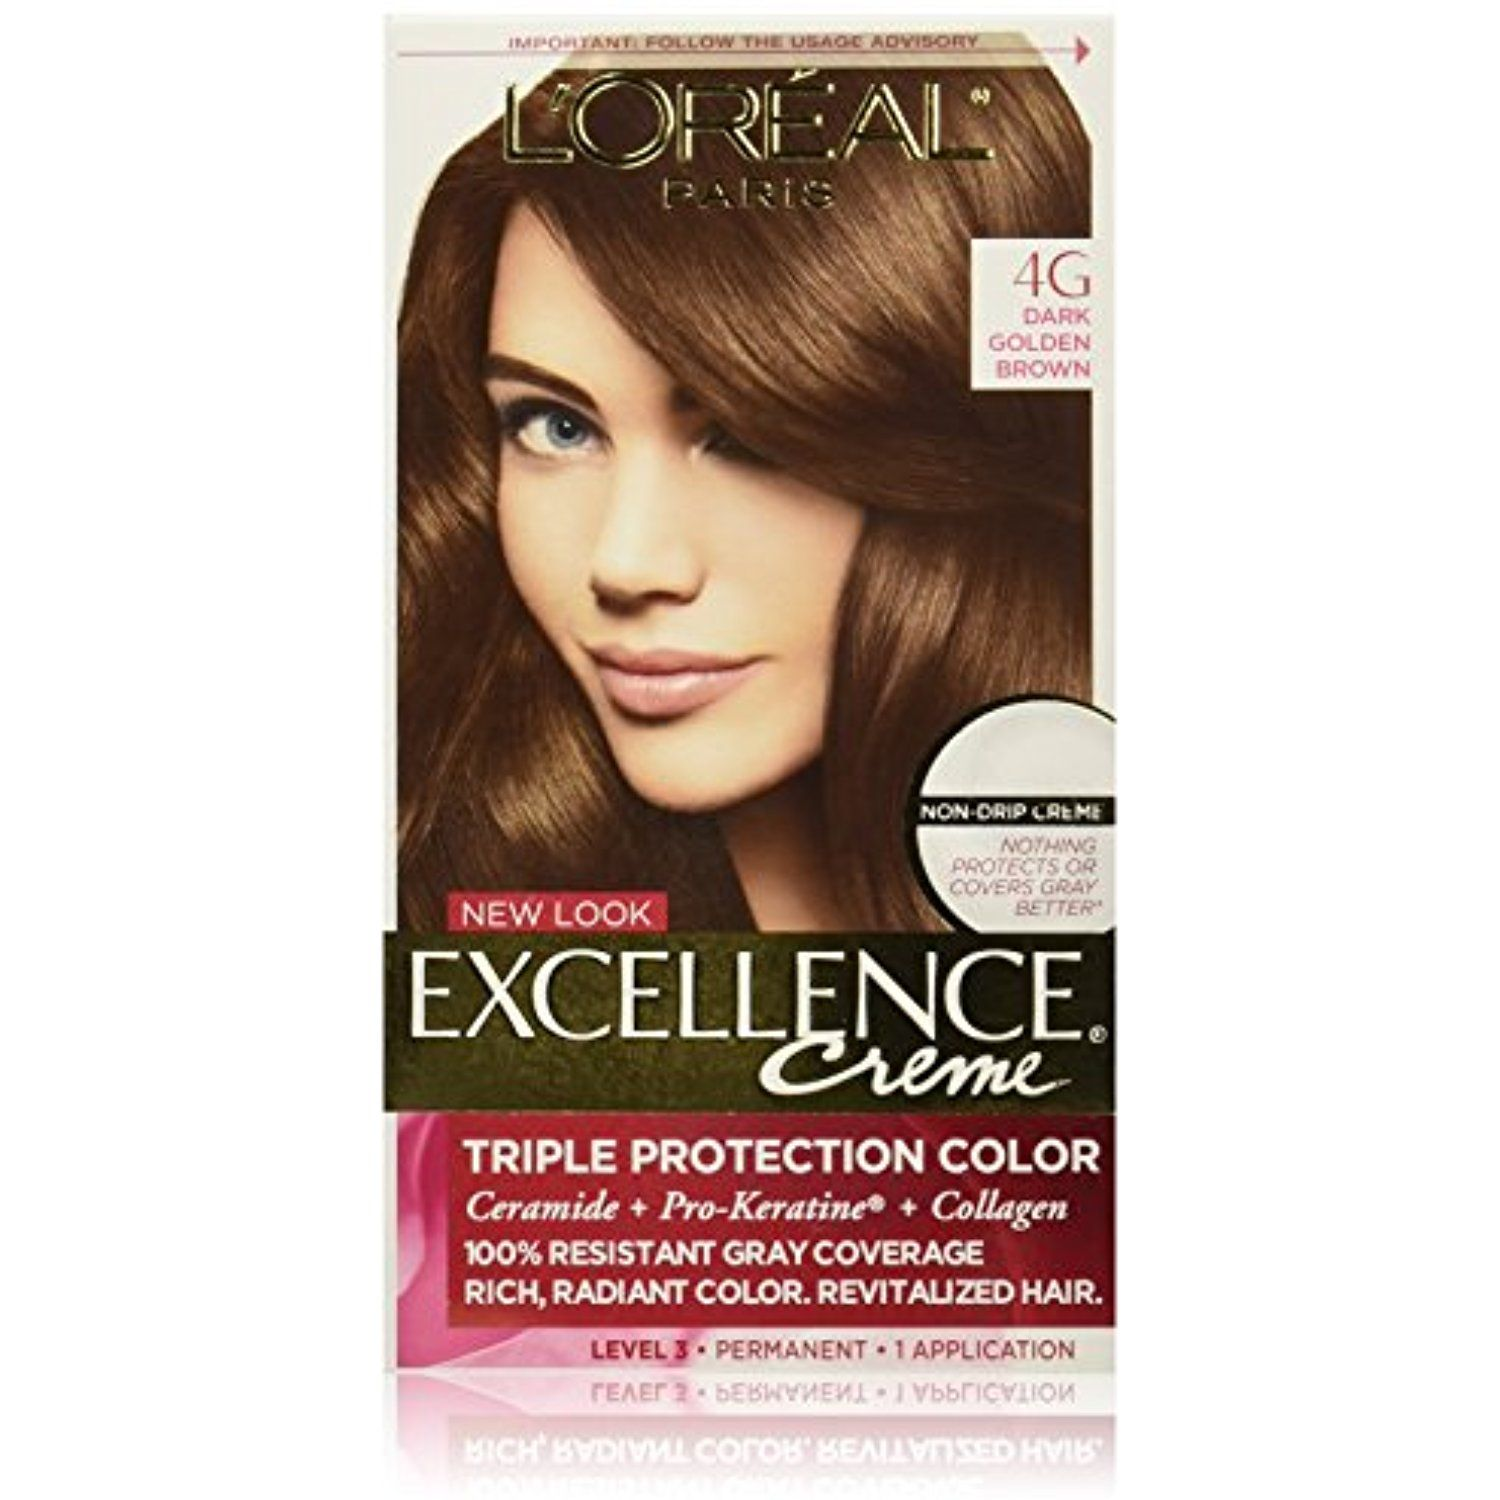 L Oreal Paris Excellence Creme 4g Dark Golden Brown Packaging May Vary You Can Find Out More De Grey Hair Coverage Loreal Paris Golden Brown Hair Color